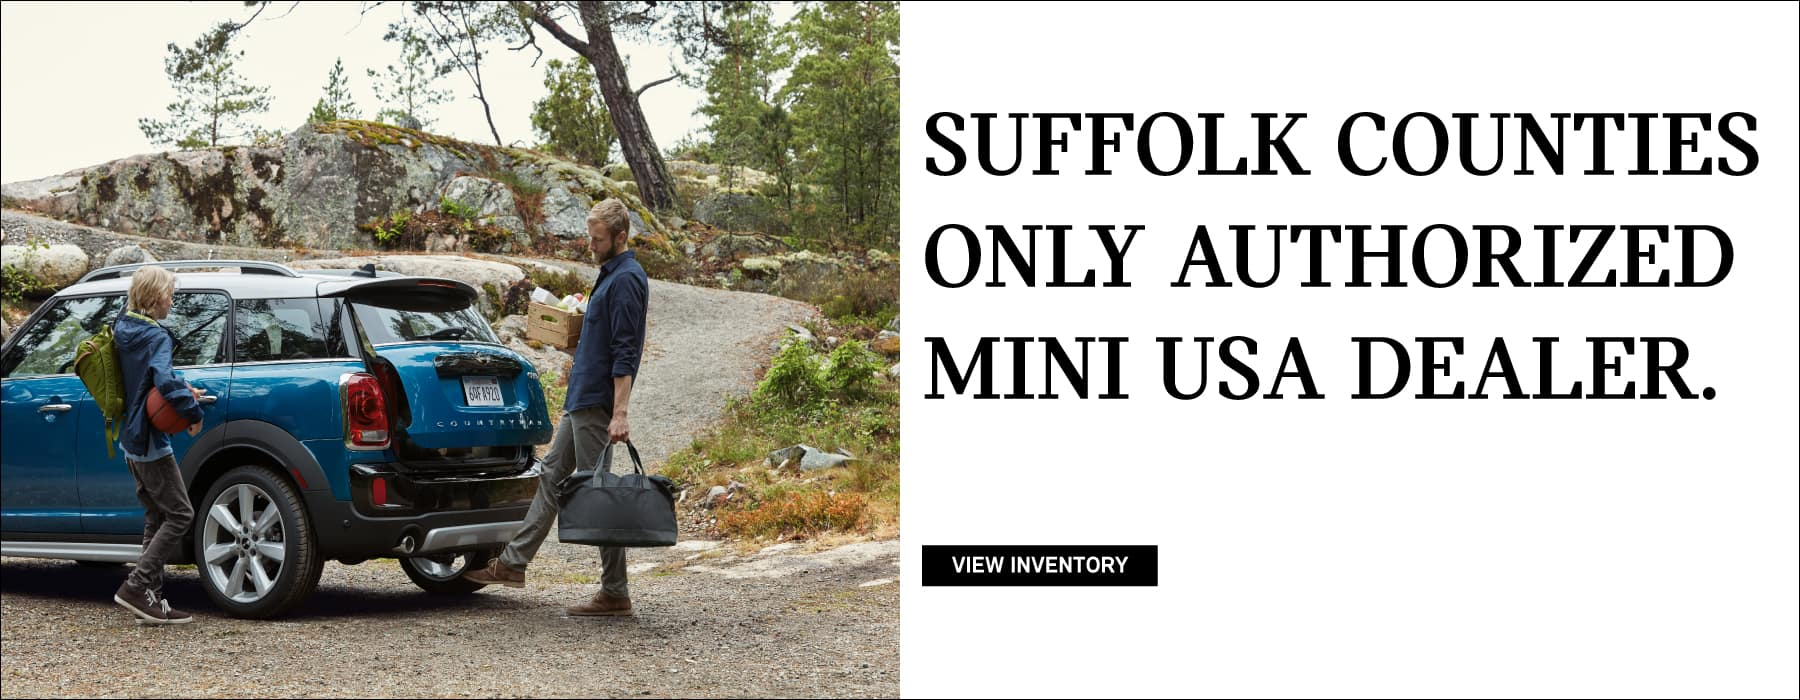 SUFFOLK COUNTIES ONLY AUTHORIZED MINI USA DEALER.